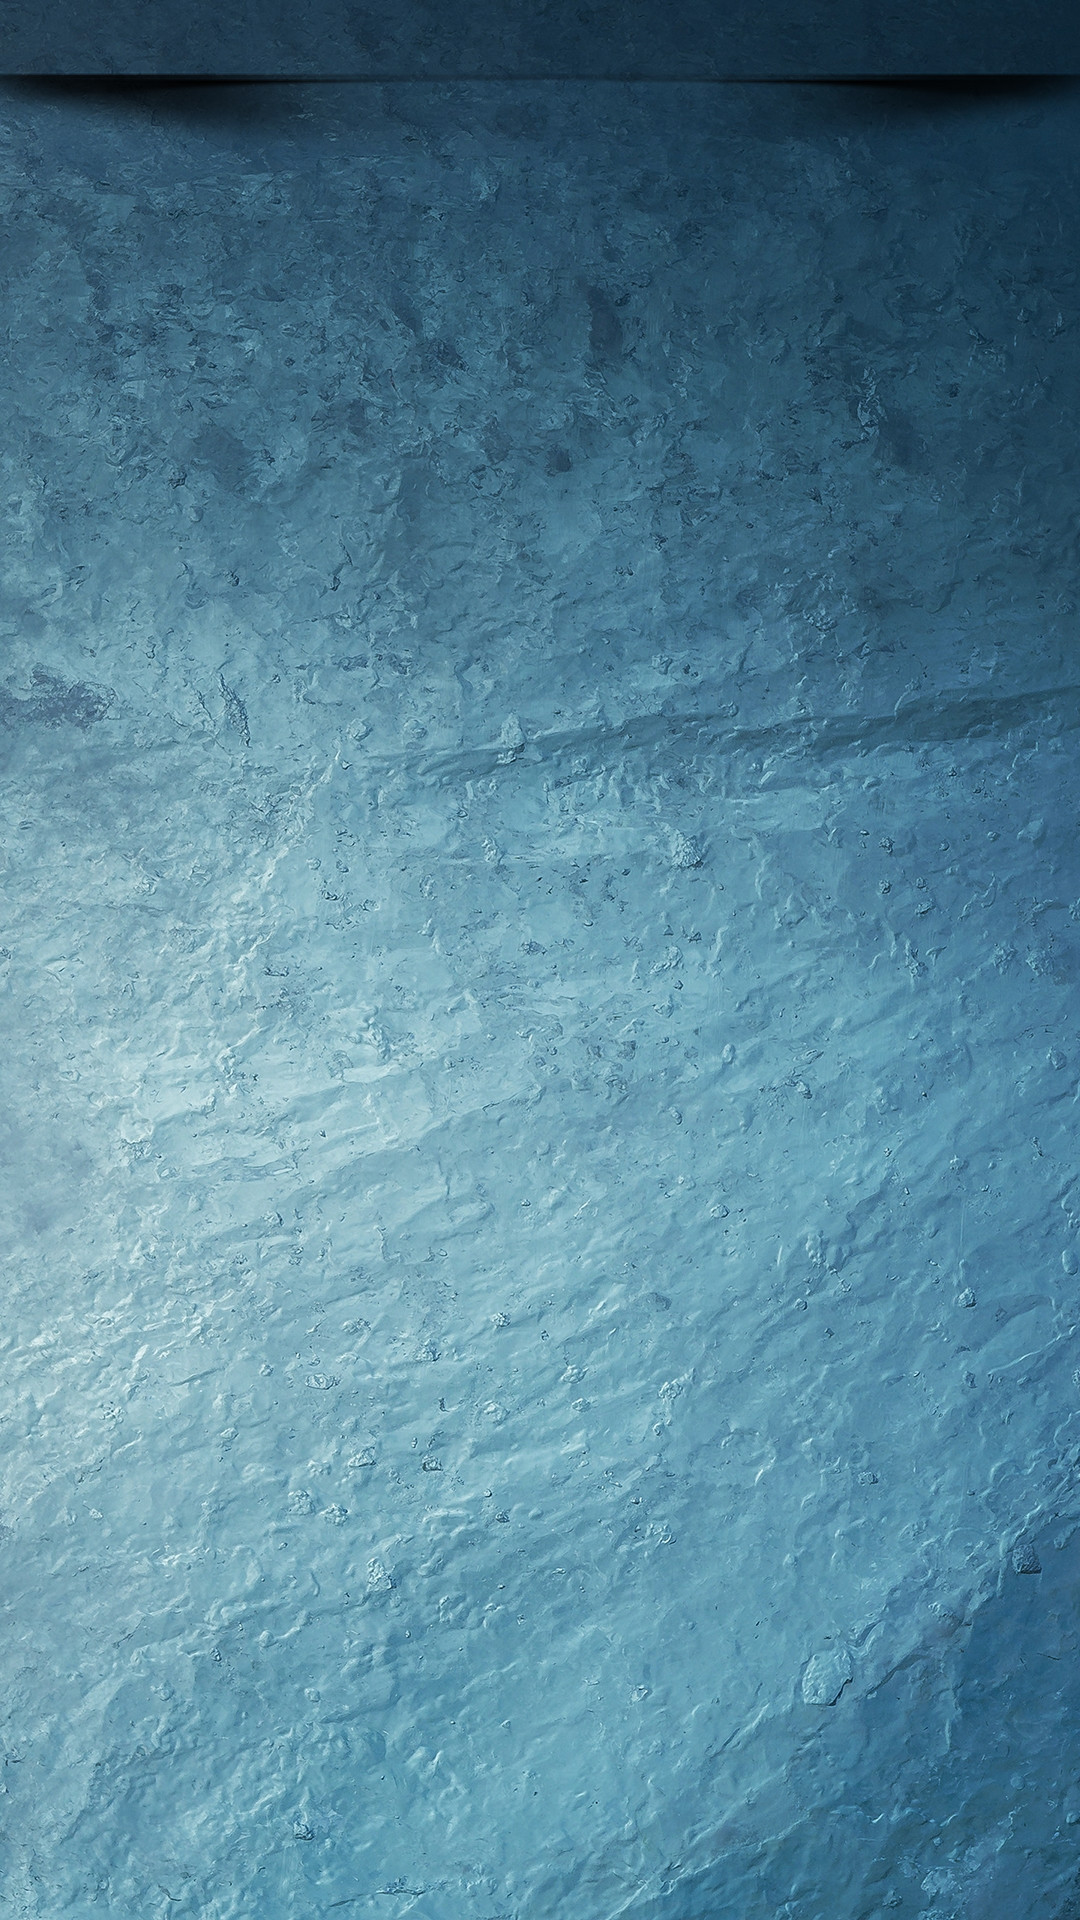 Full HD wallpaper for mobile phones, with the status bar shadow effect.  Beautiful and